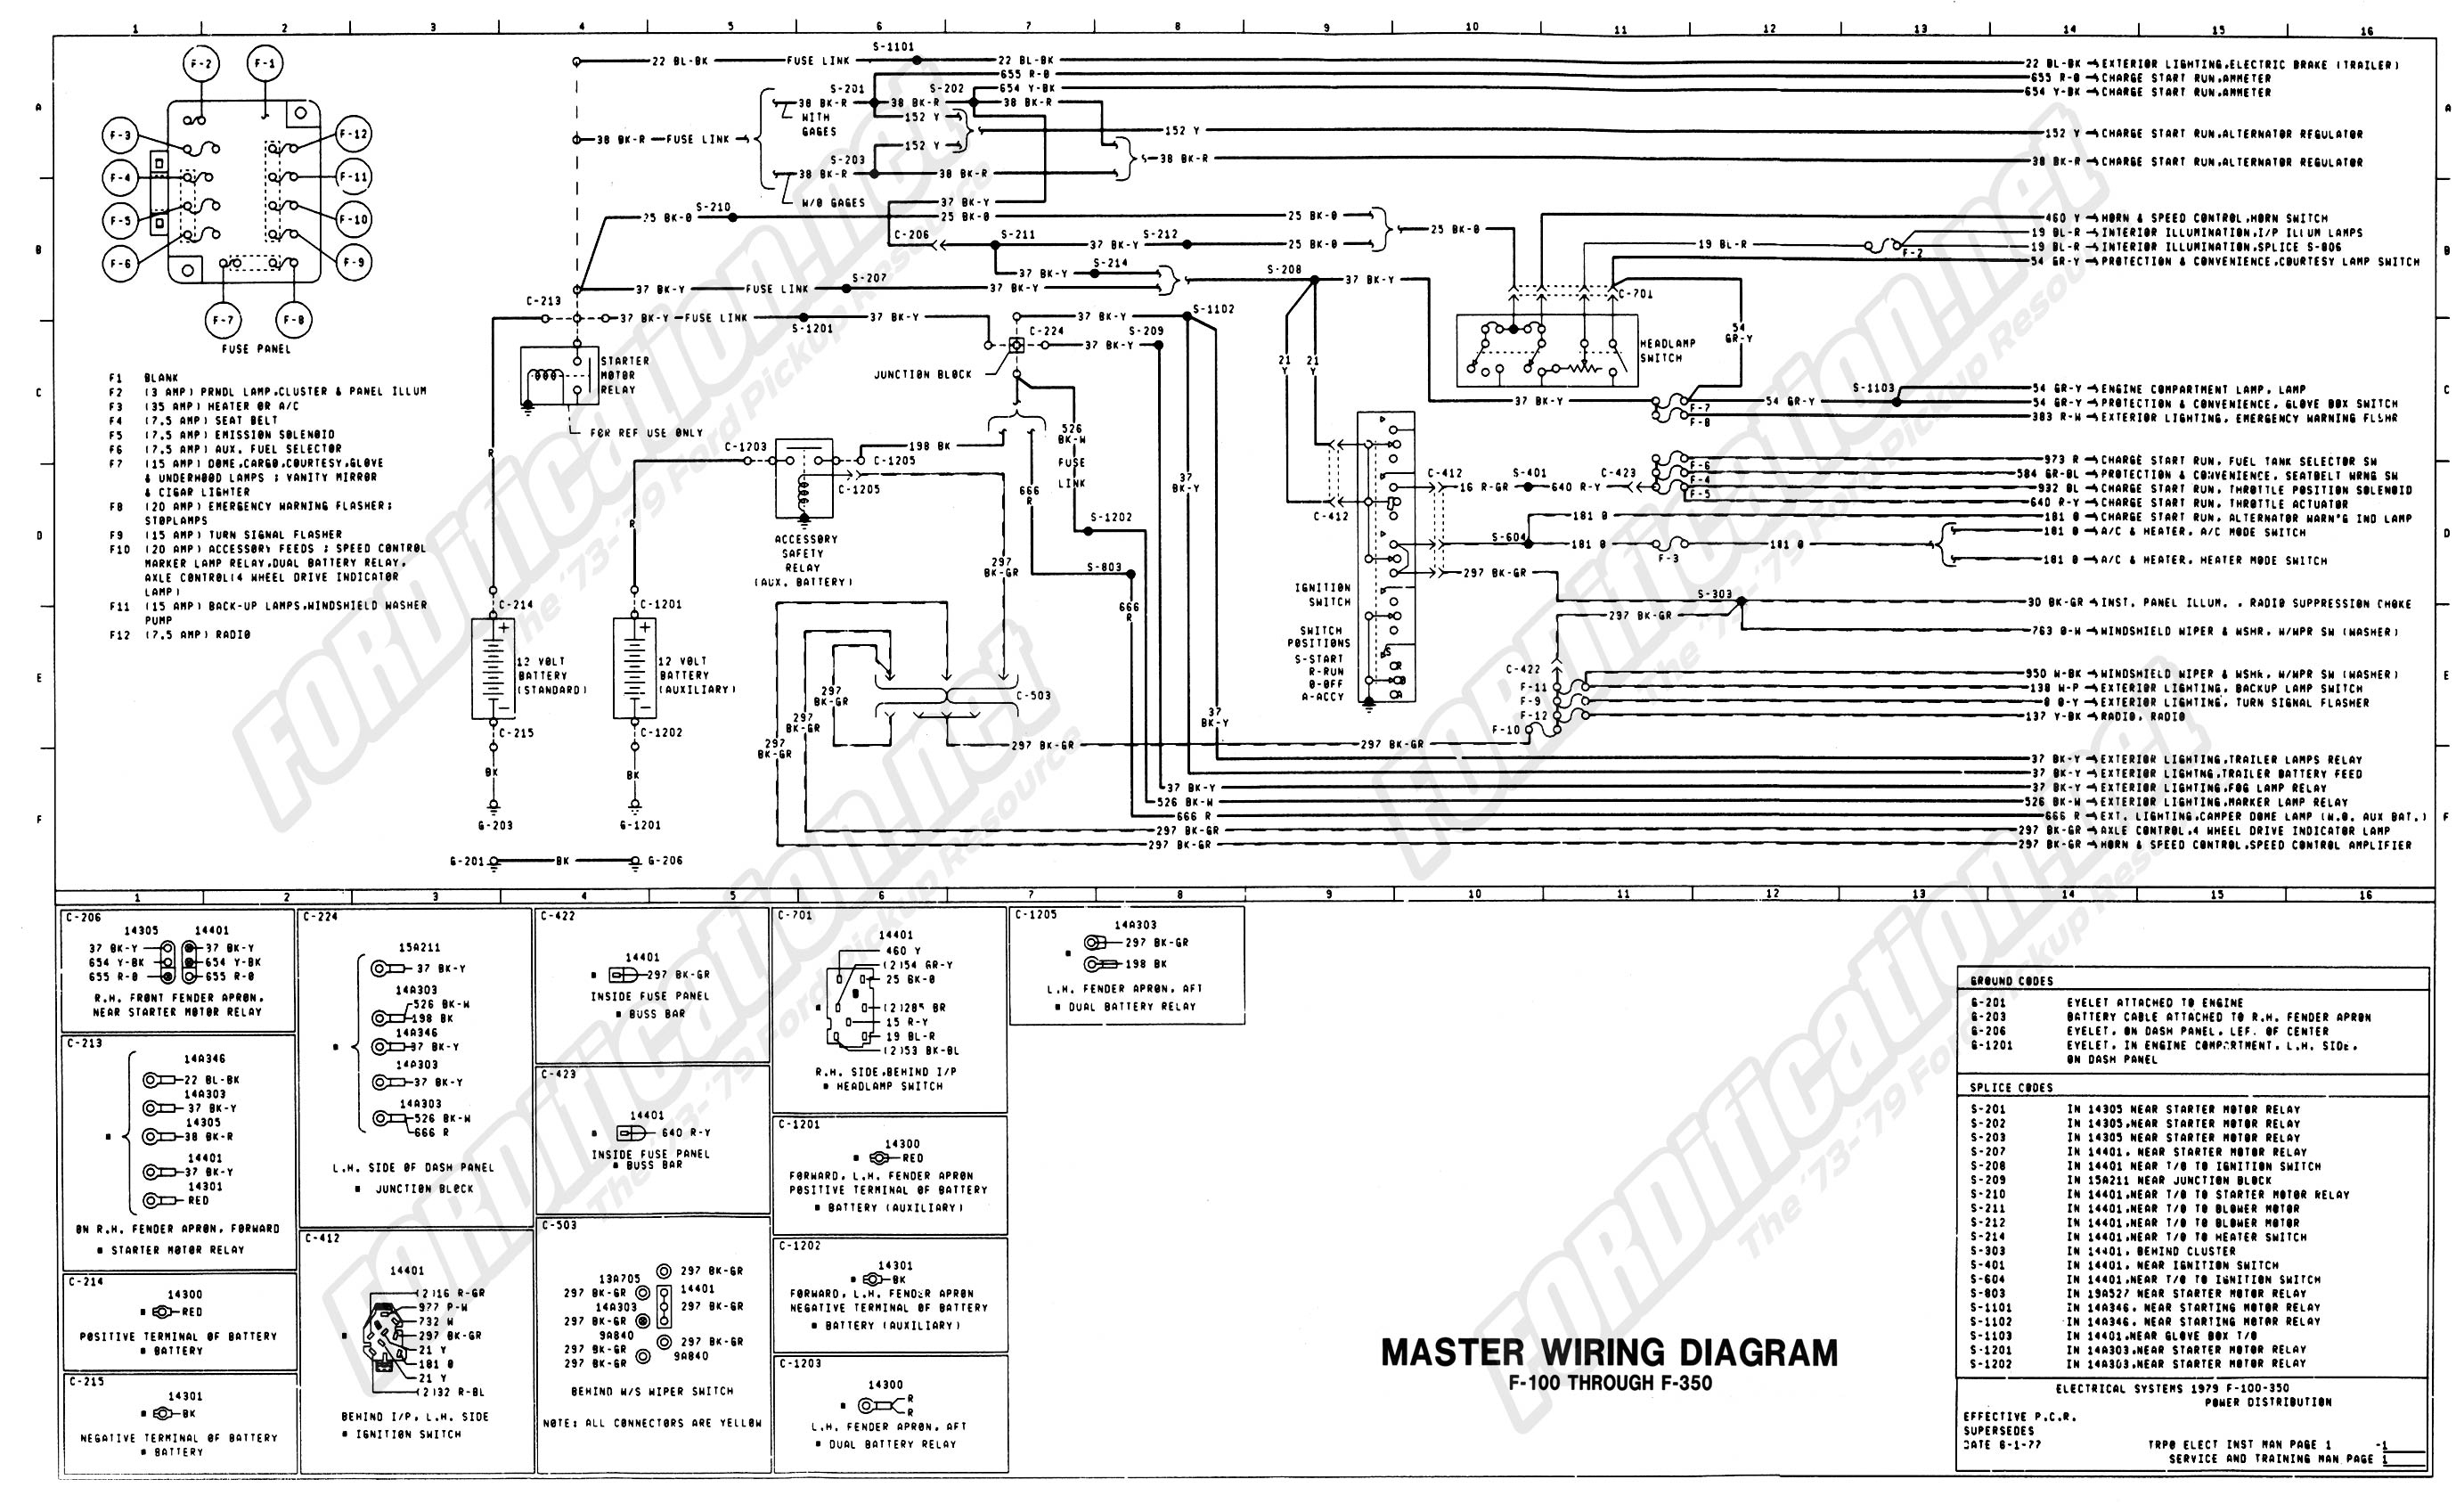 DOC] ➤ Diagram 1999 Mack Wiring Diagram Ebook | Schematic ... Ih Wiring Diagram on